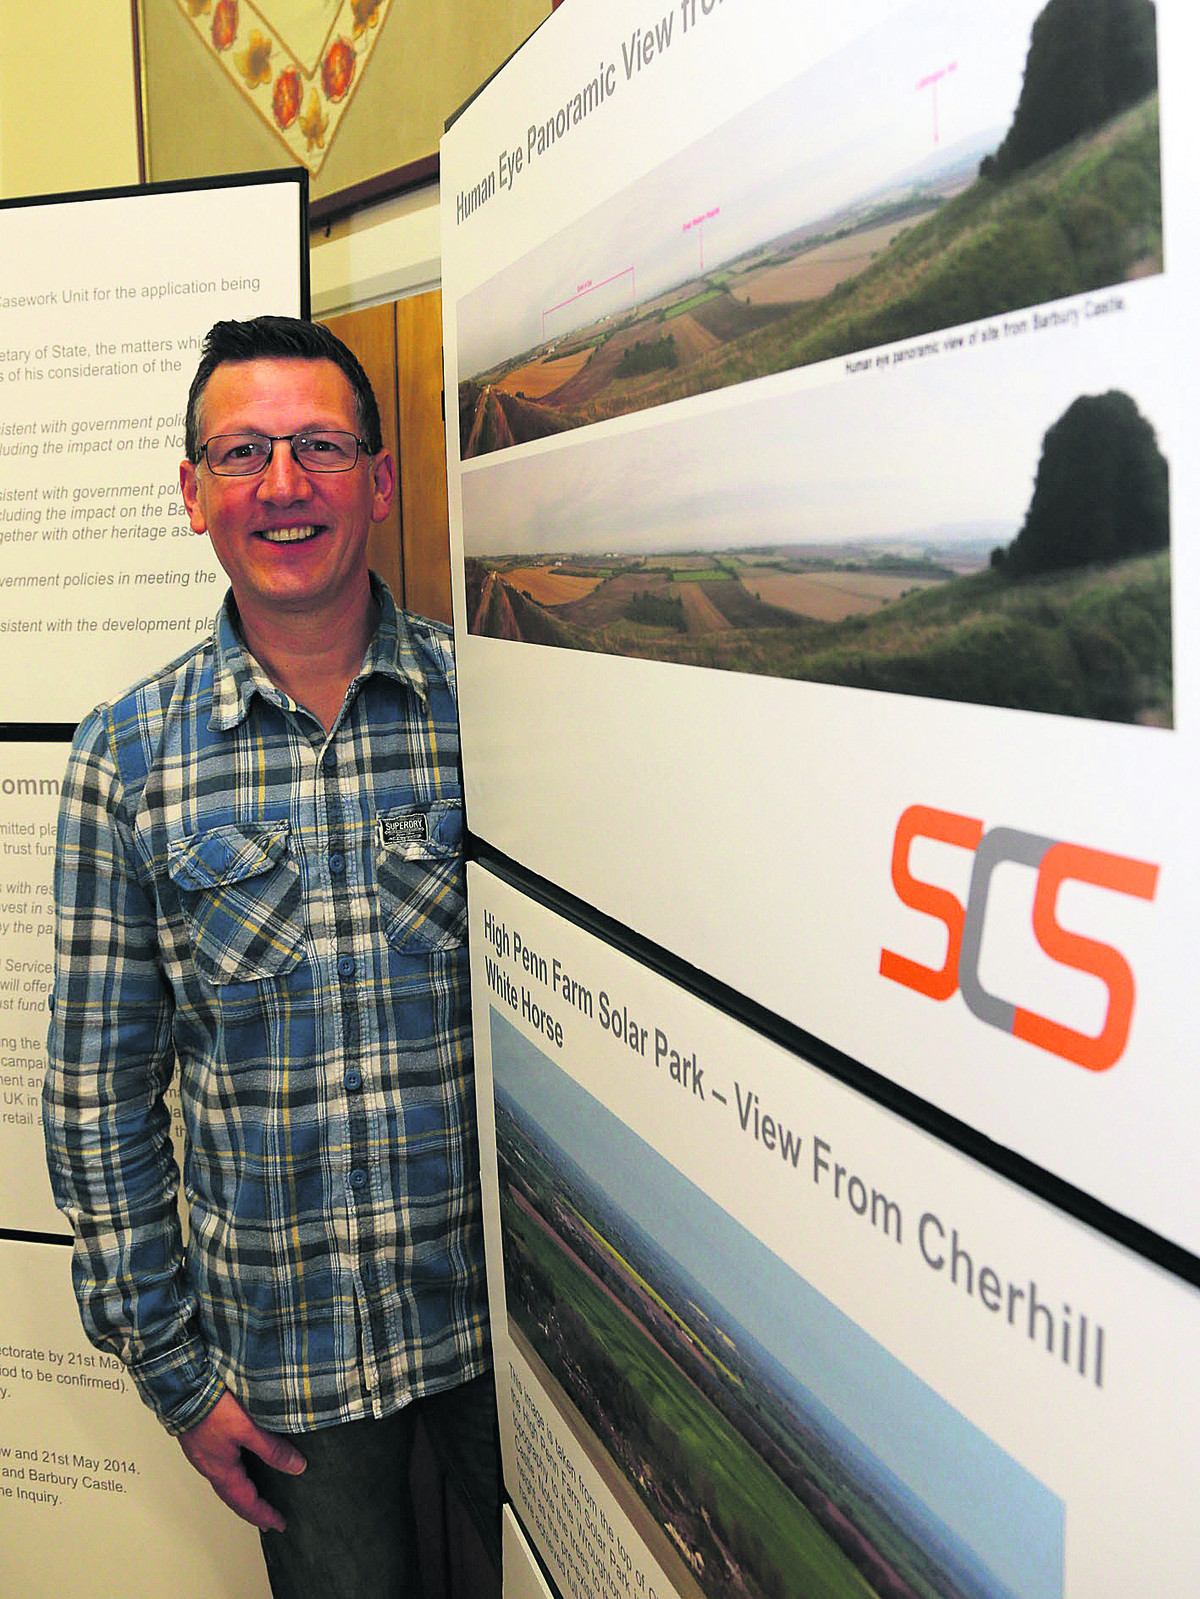 James Owen, commercial director for SCS in Swindon, unveils plans for the Wroughton airfield solar farm to residents